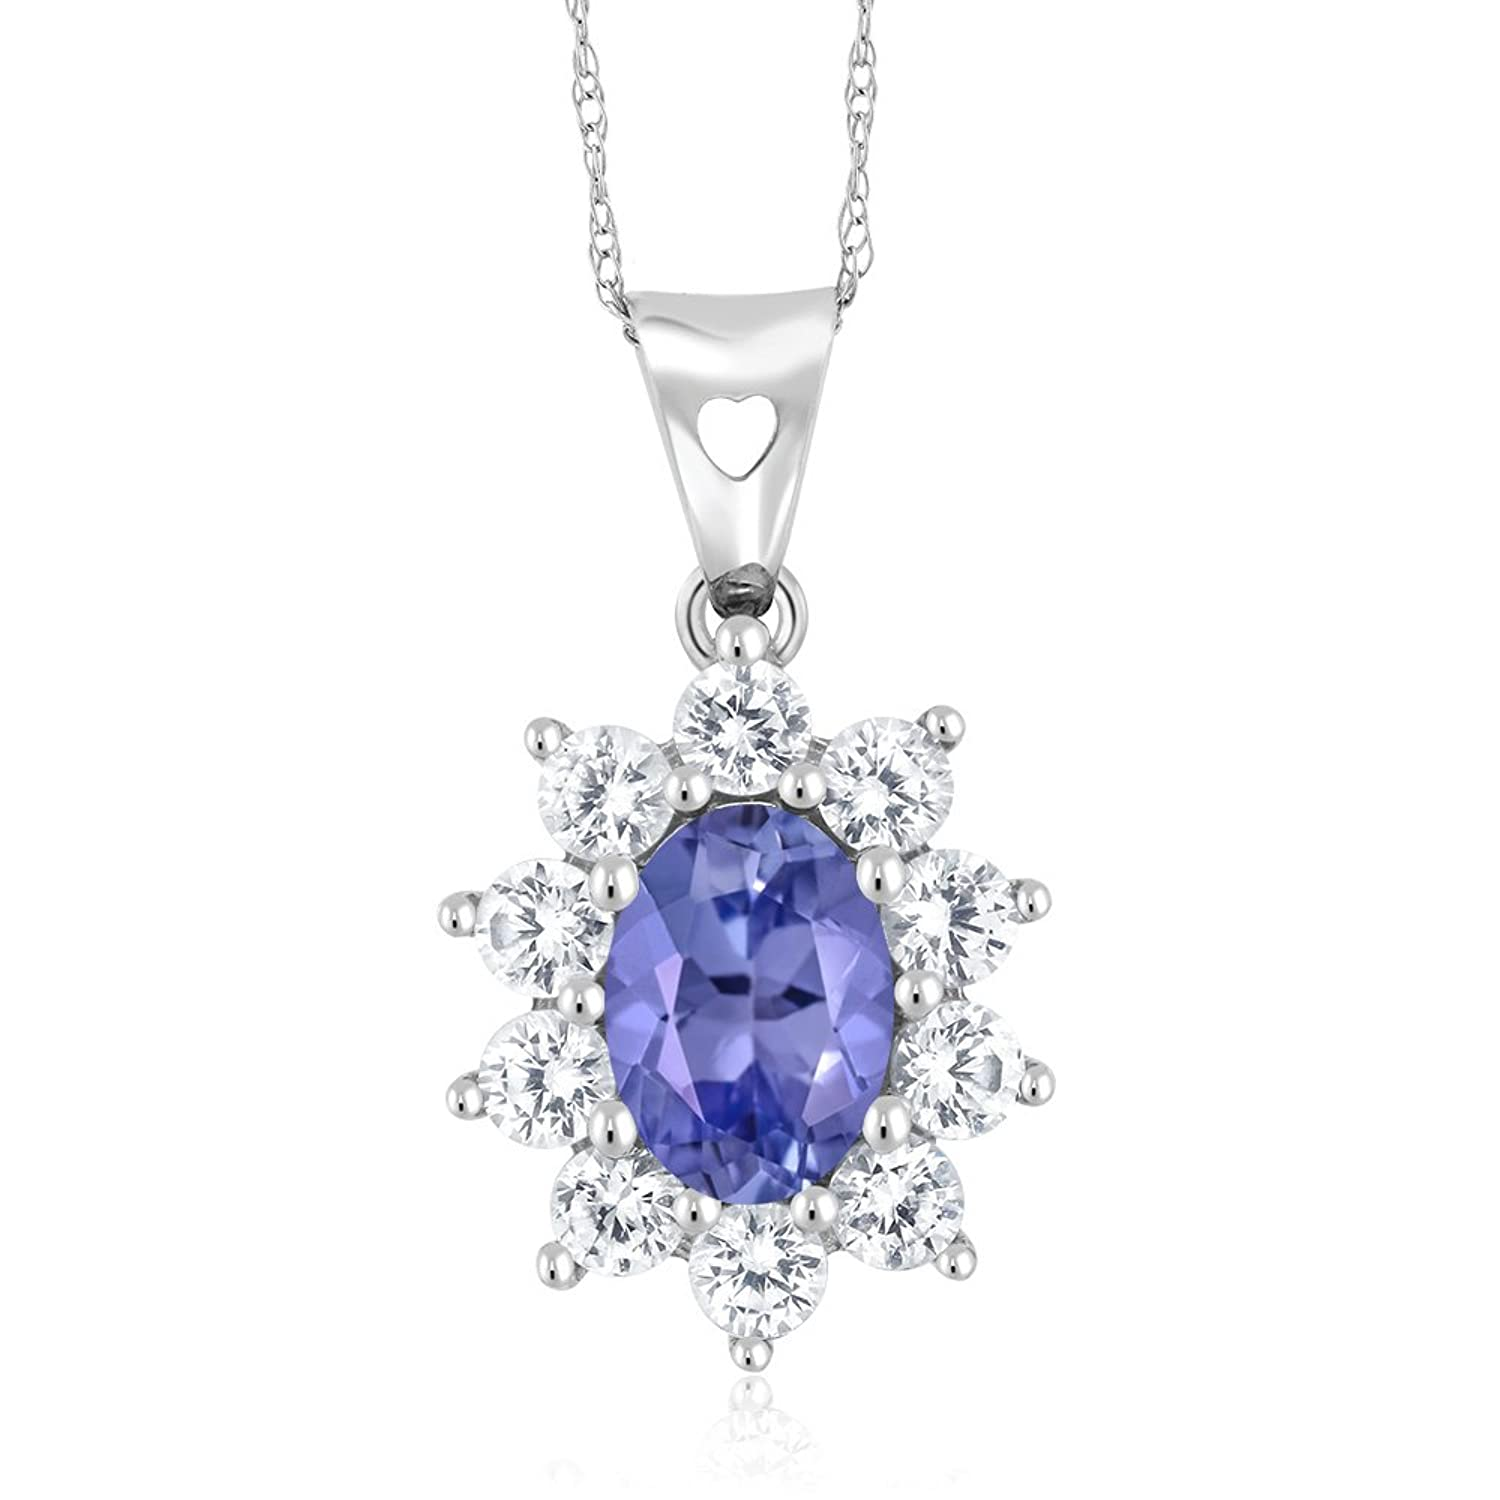 10K White Gold 1.25 Ct Blue Tanzanite Women's Oval Halo Pendant with Chain